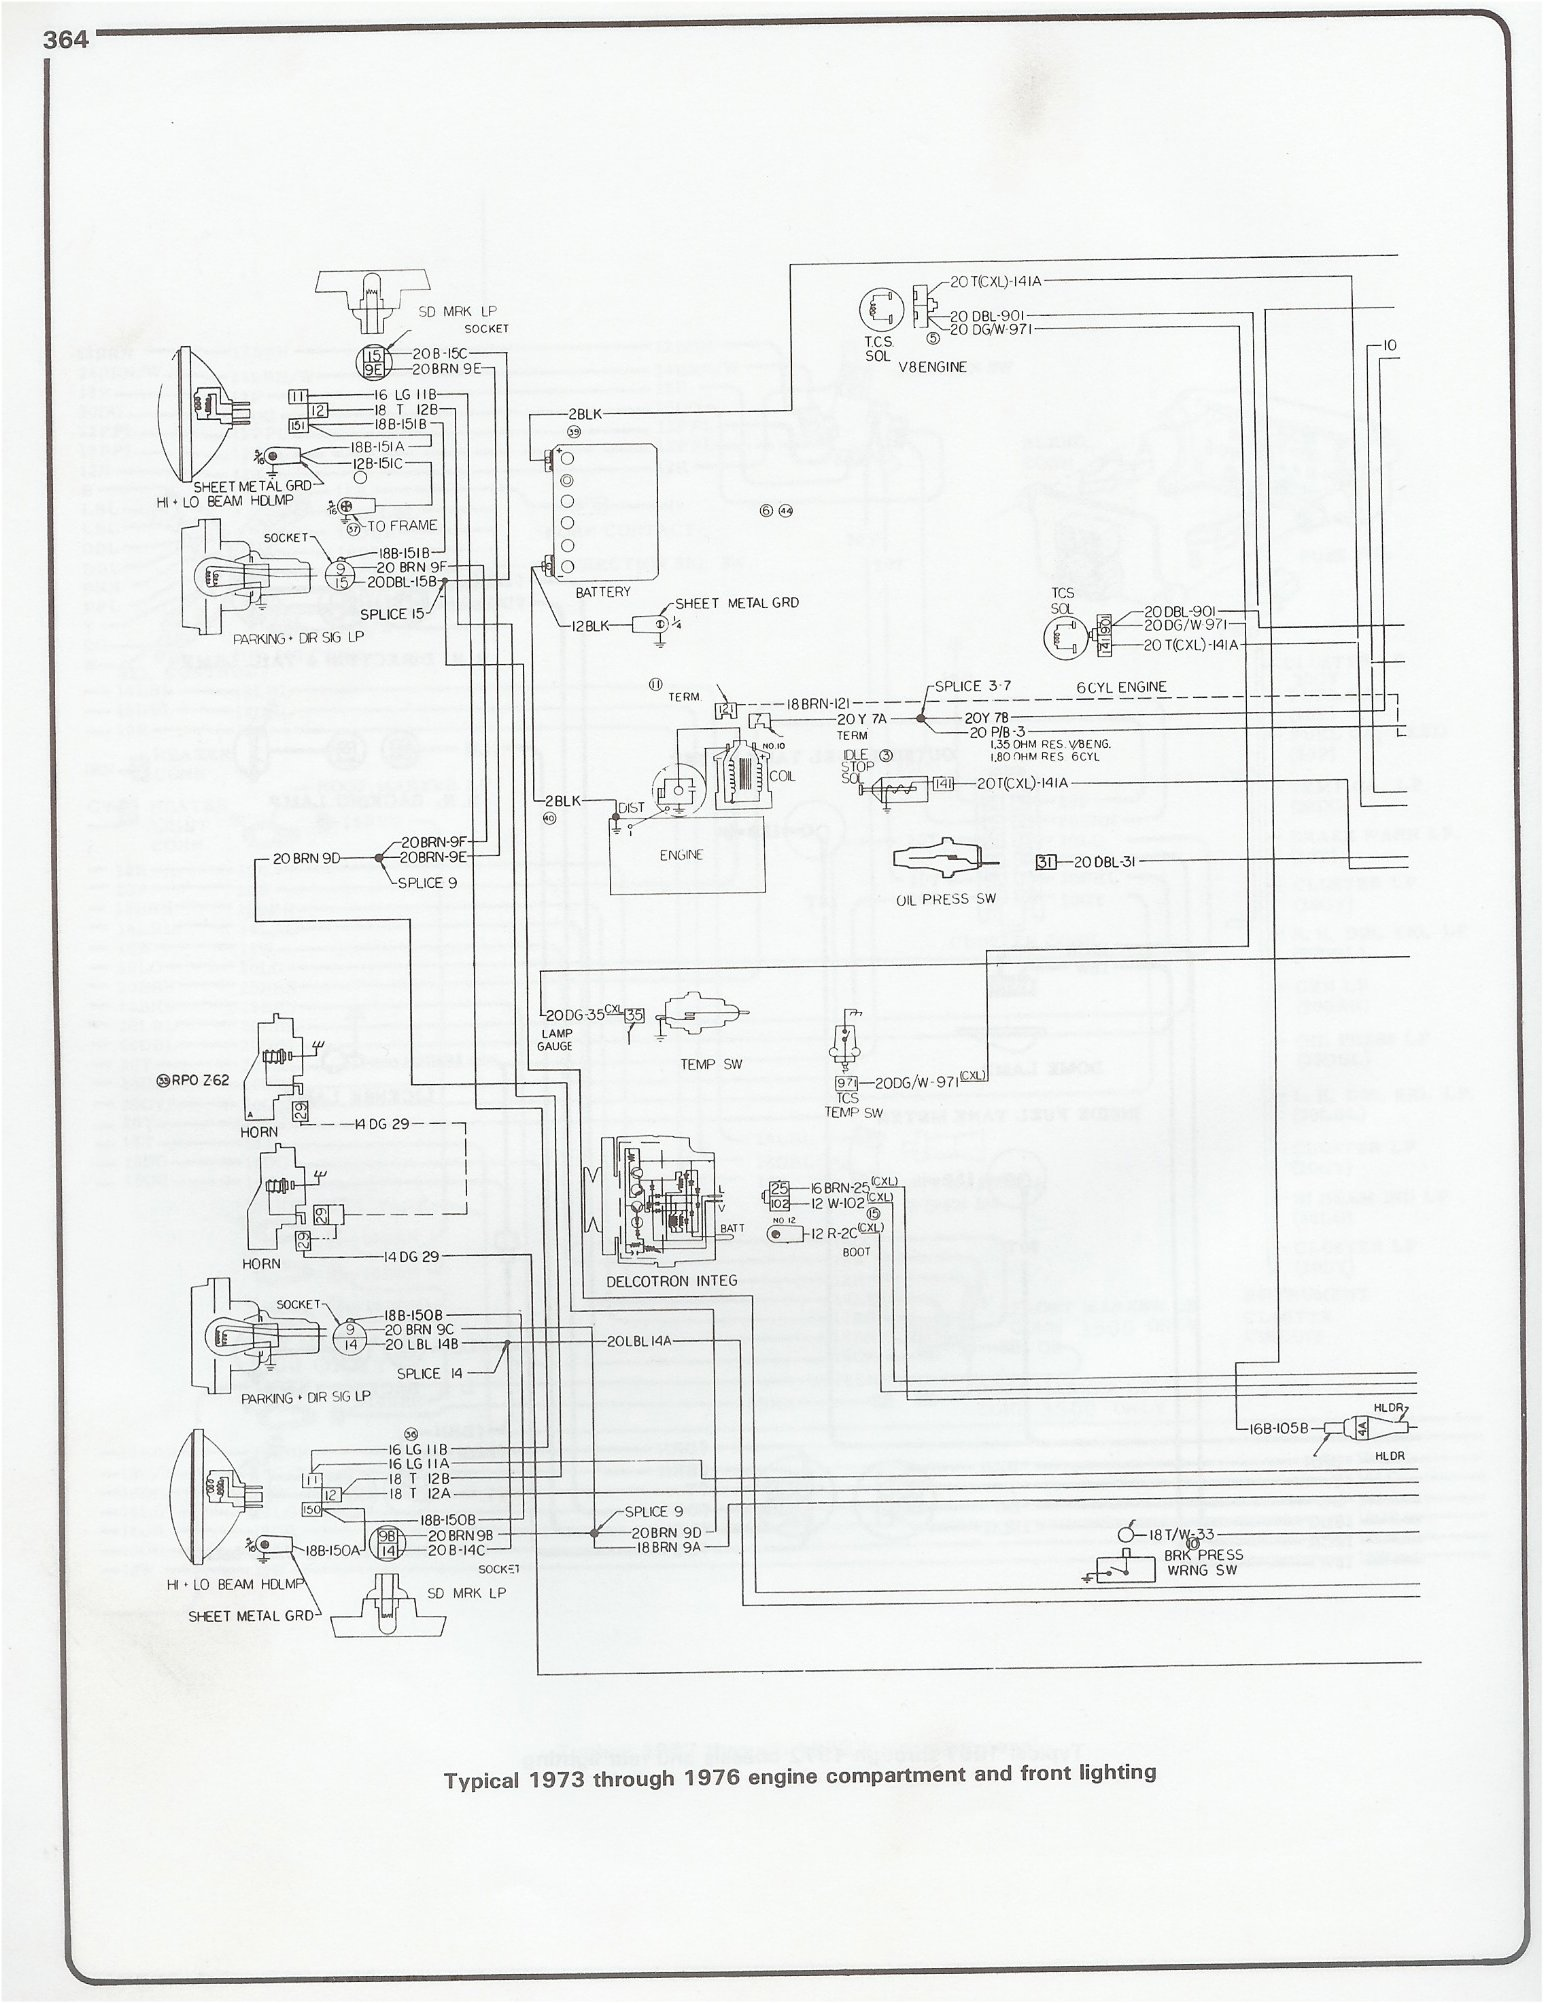 73 76_eng_frt_light complete 73 87 wiring diagrams 2000 chevy silverado 1500 wiring diagram at aneh.co